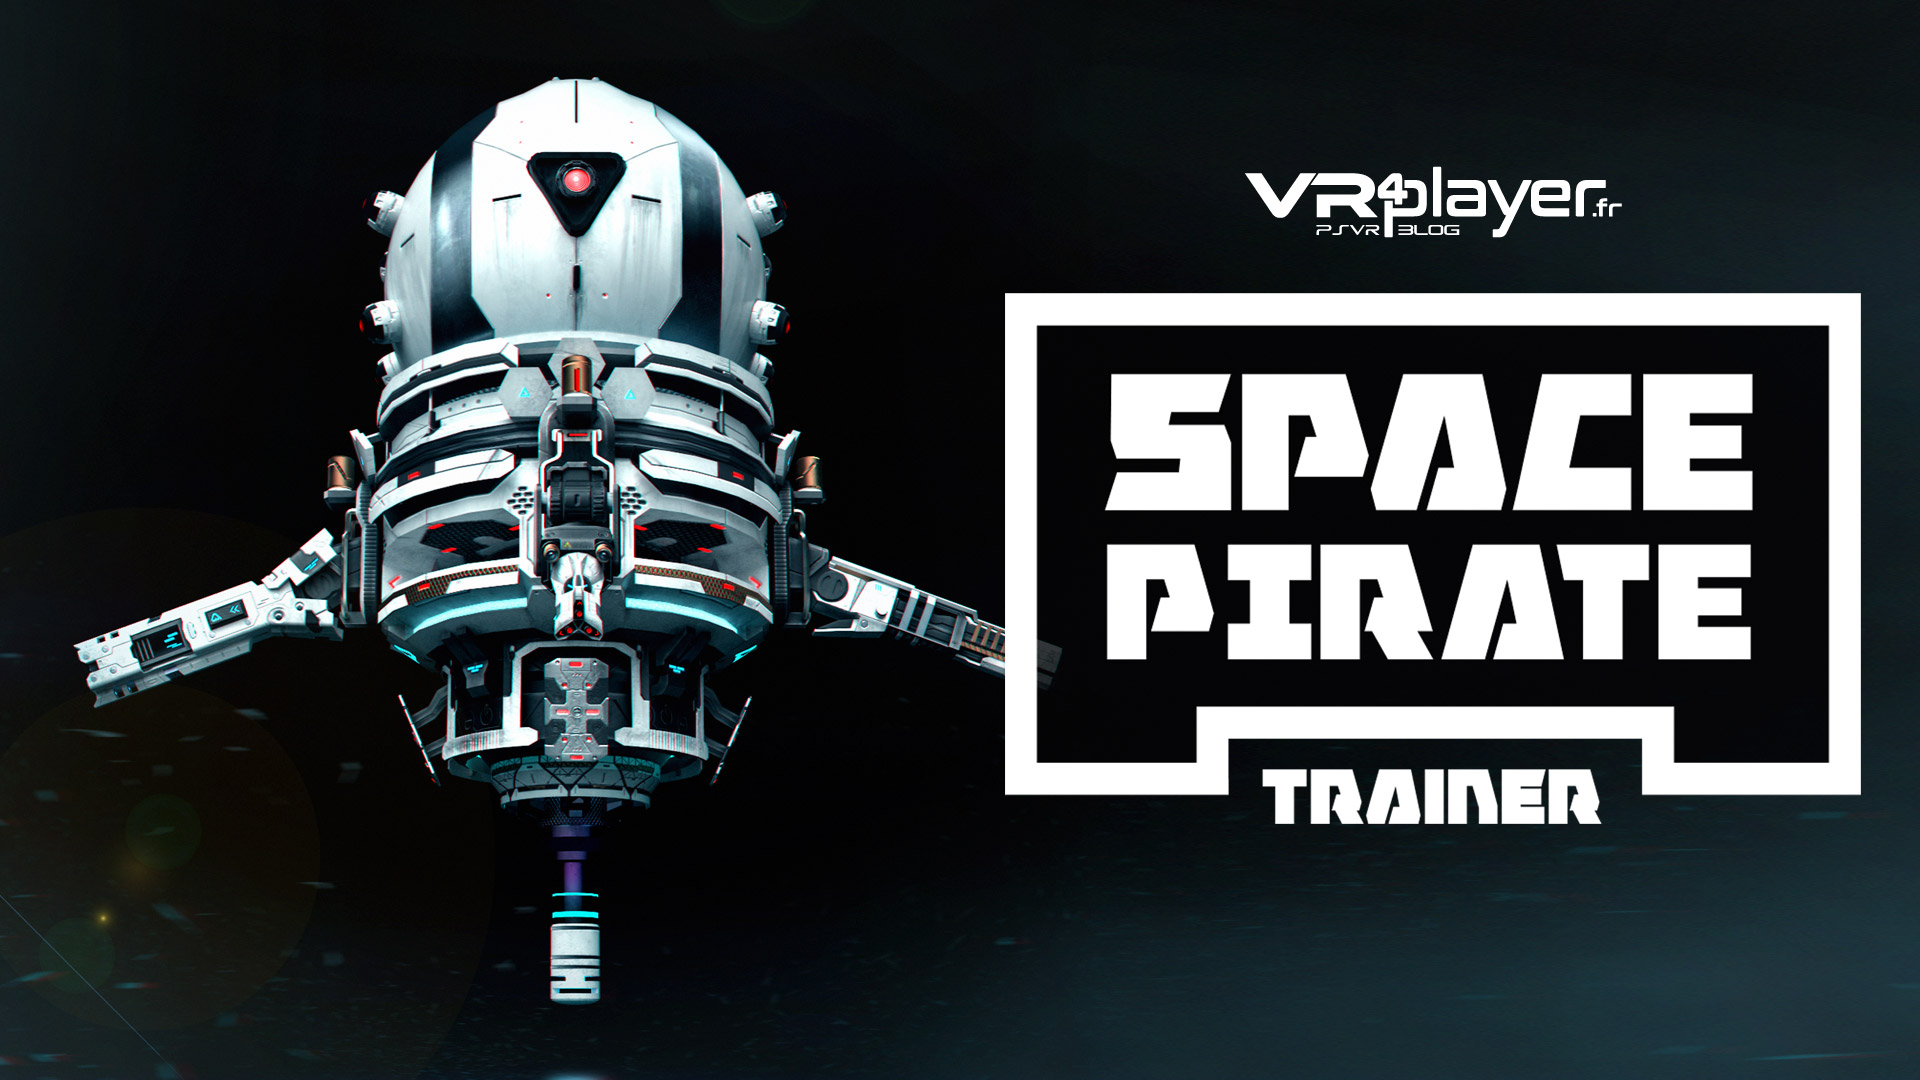 Space Pirate Trainer PSVR PlayStation VR VR4Player